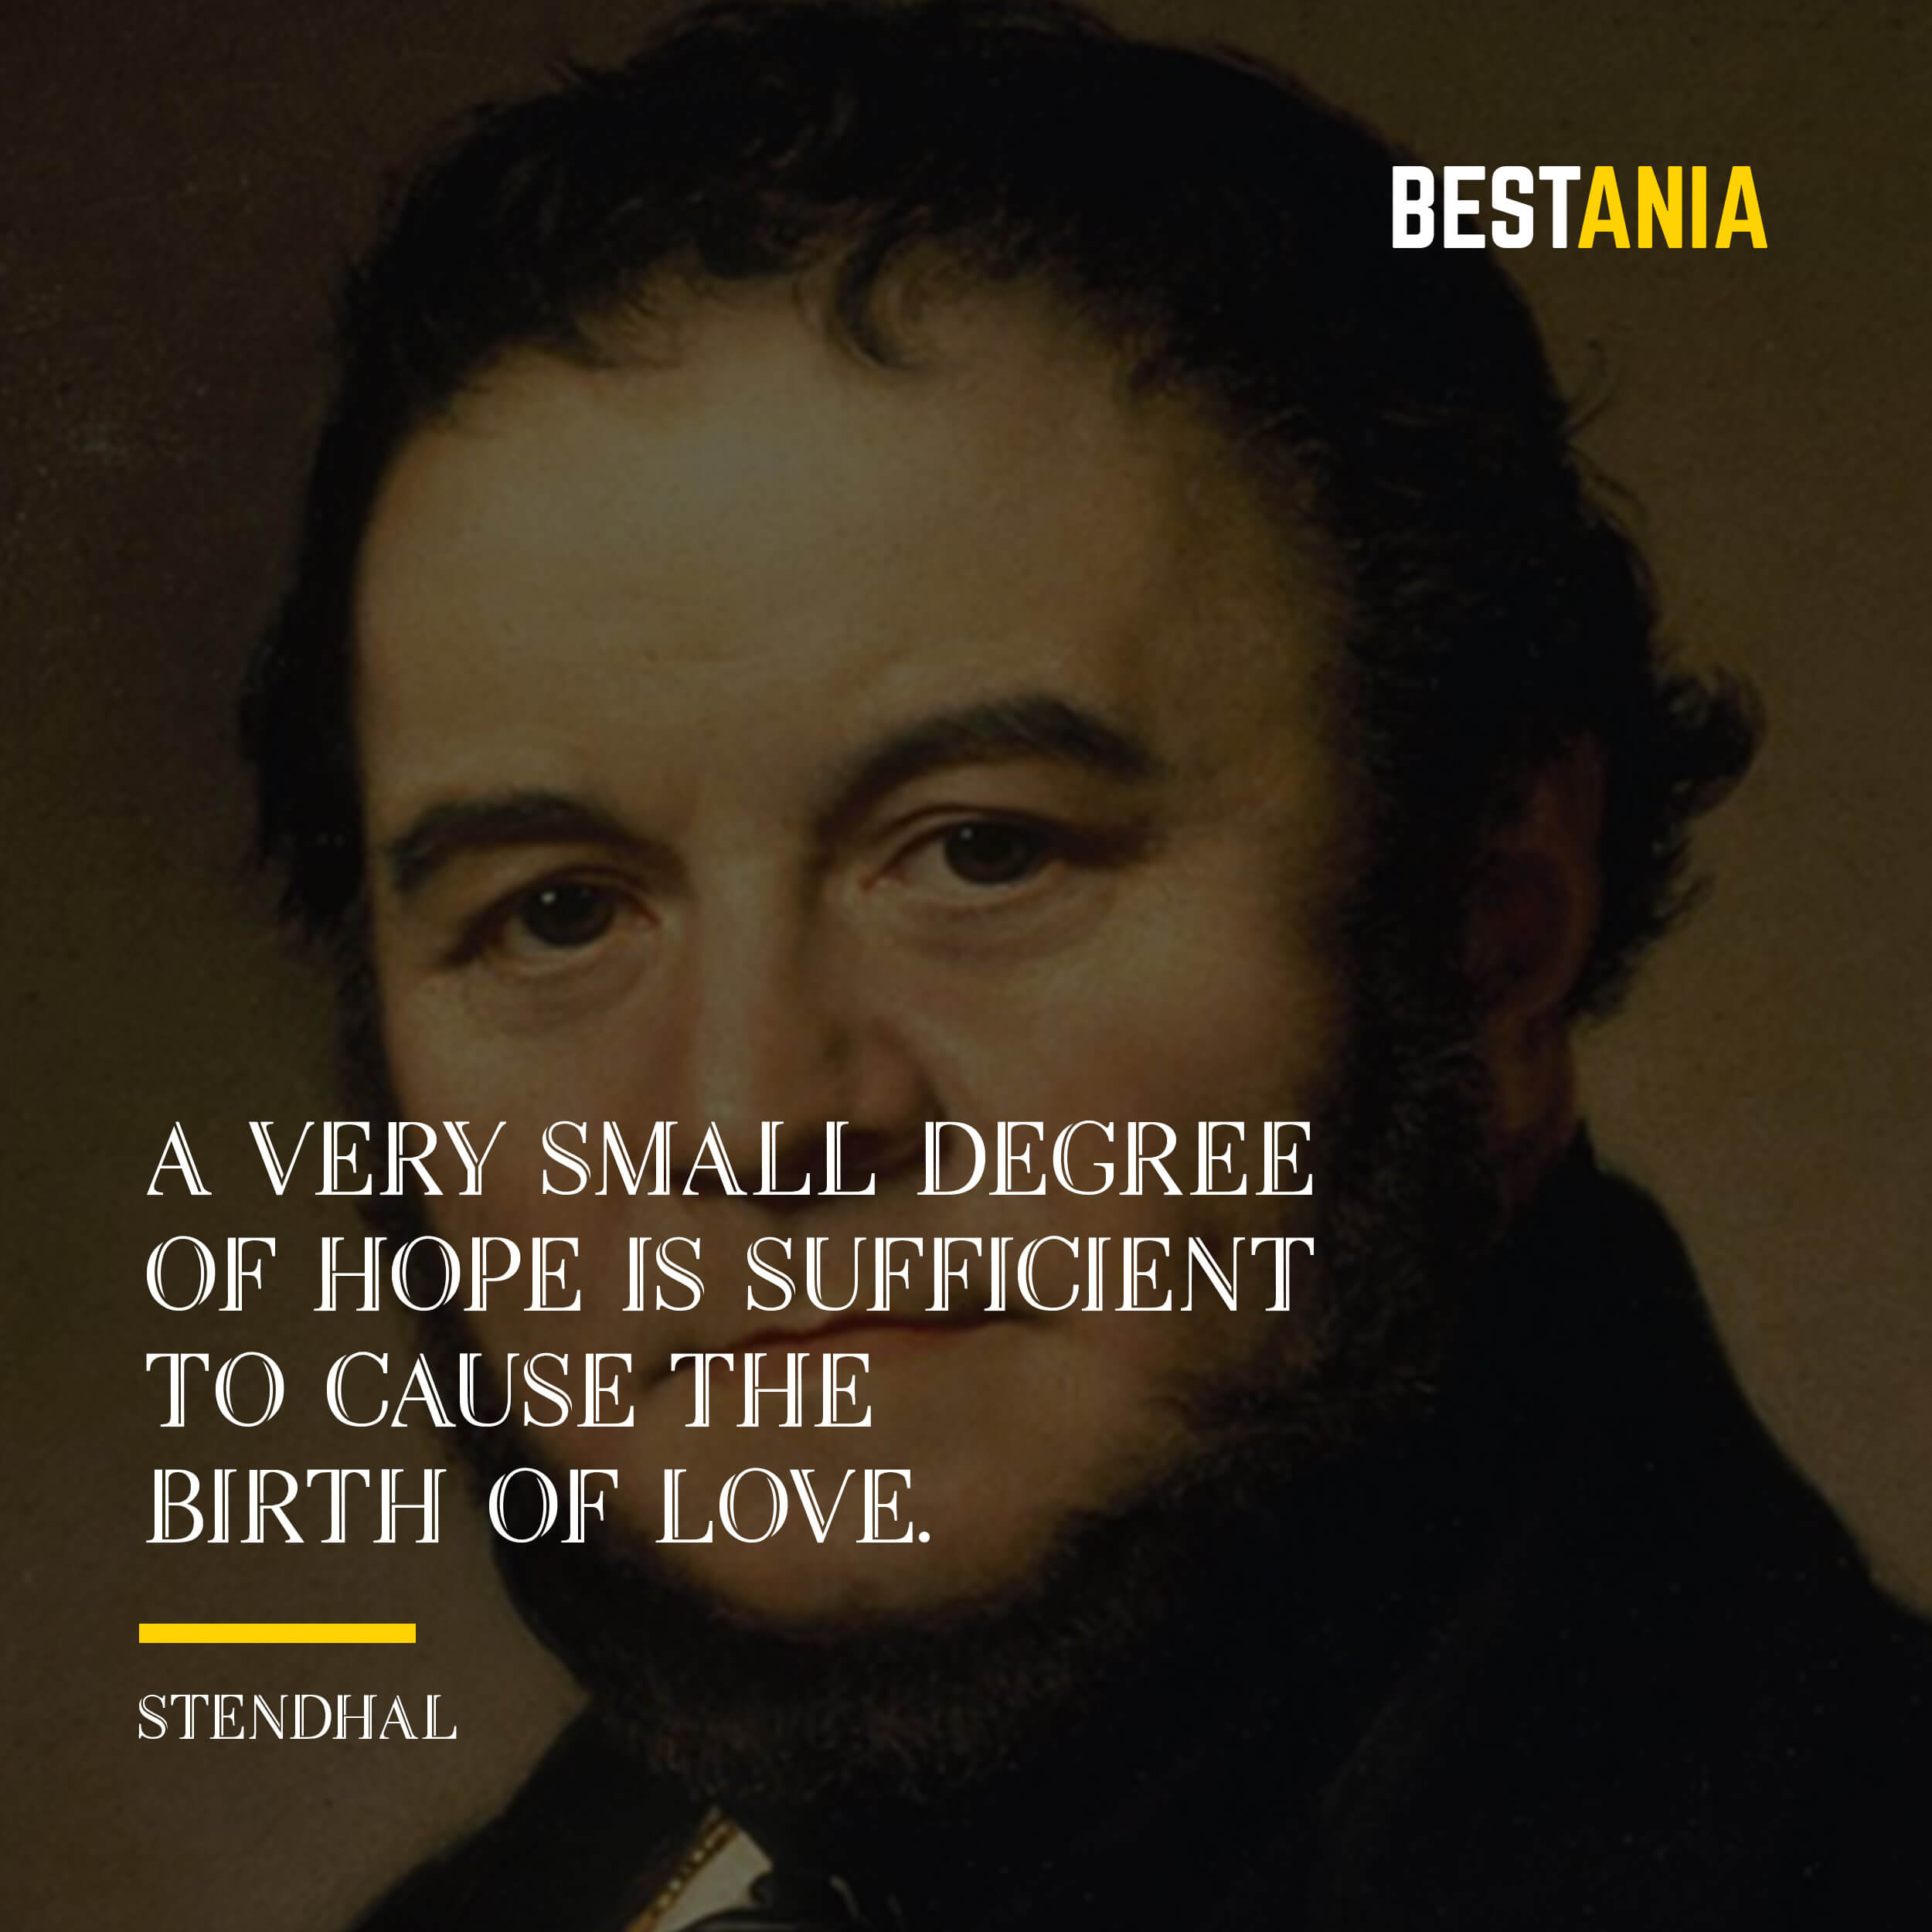 """""""A VERY SMALL DEGREE OF HOPE IS SUFFICIENT TO CAUSE THE BIRTH OF LOVE."""" STENDHAL"""